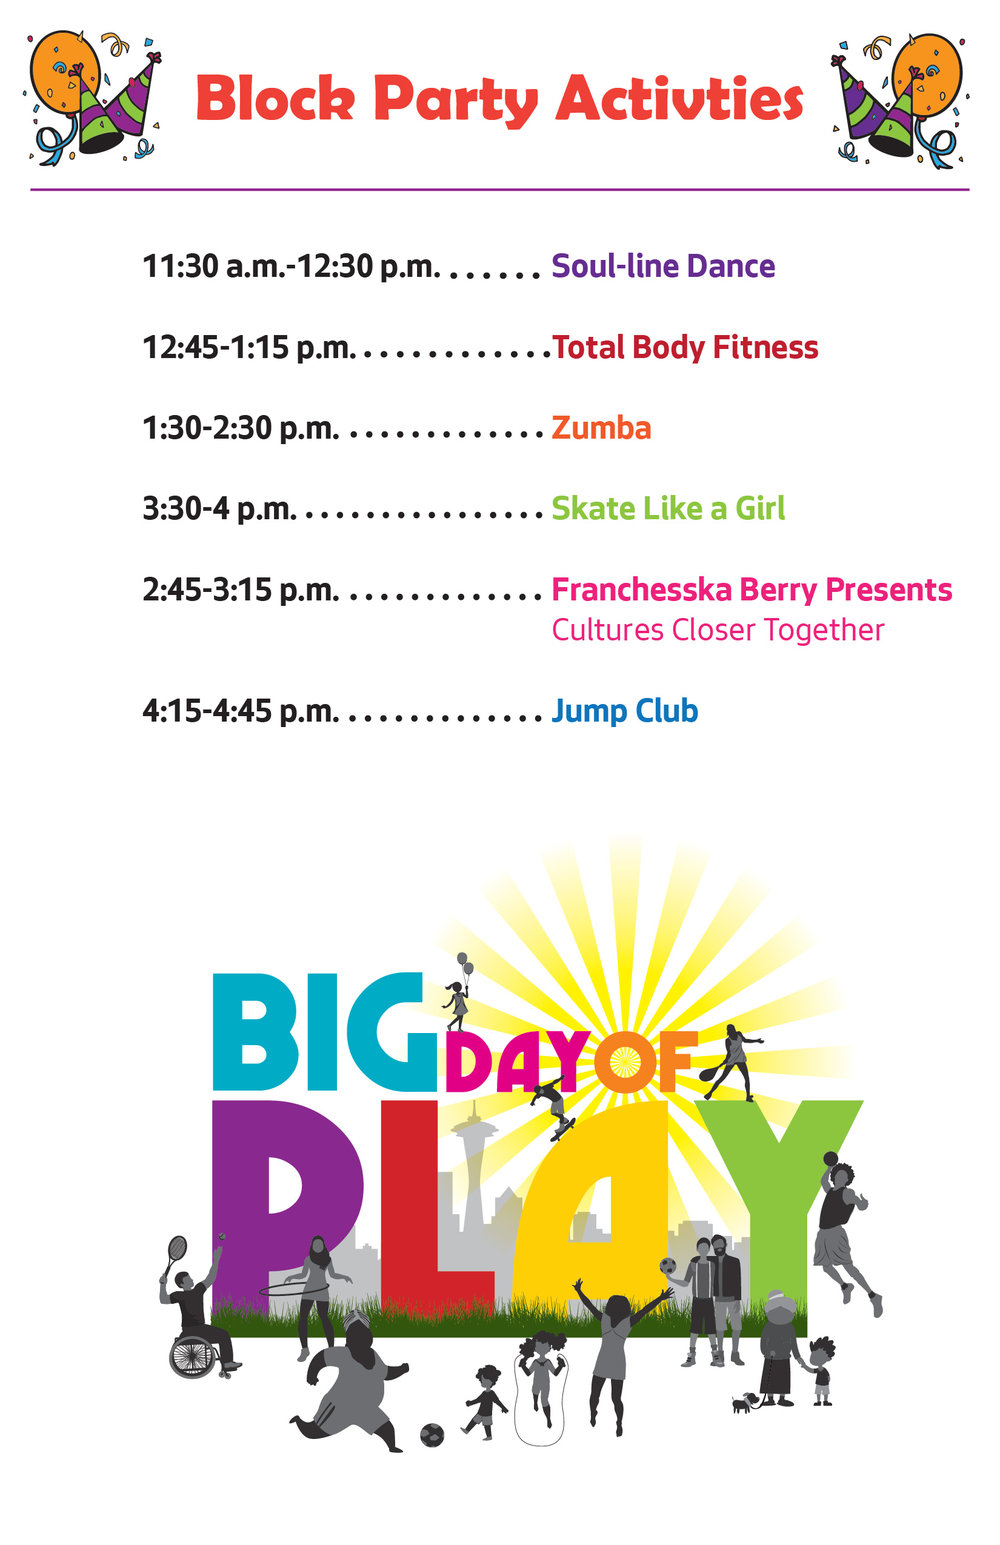 Block Party Schedule_11x17-01.jpg